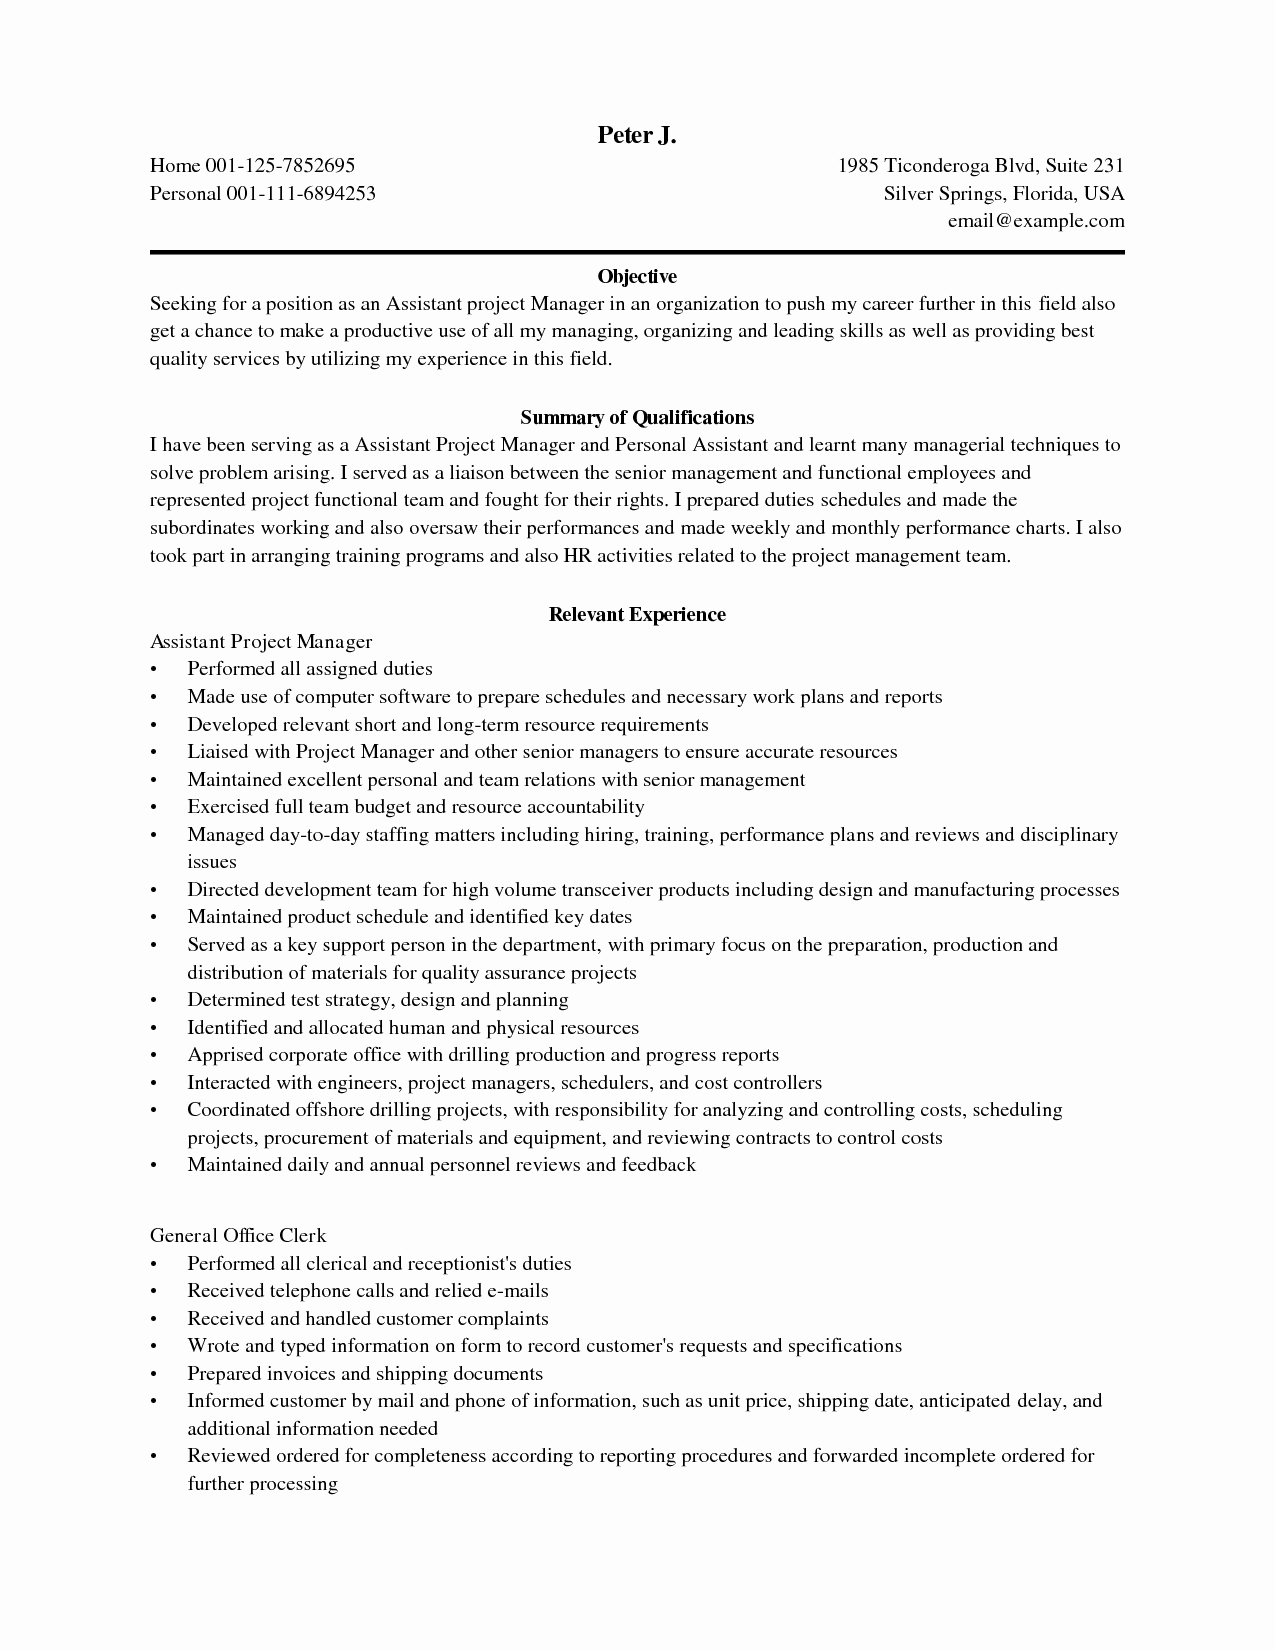 Assistant Project Manager Resume